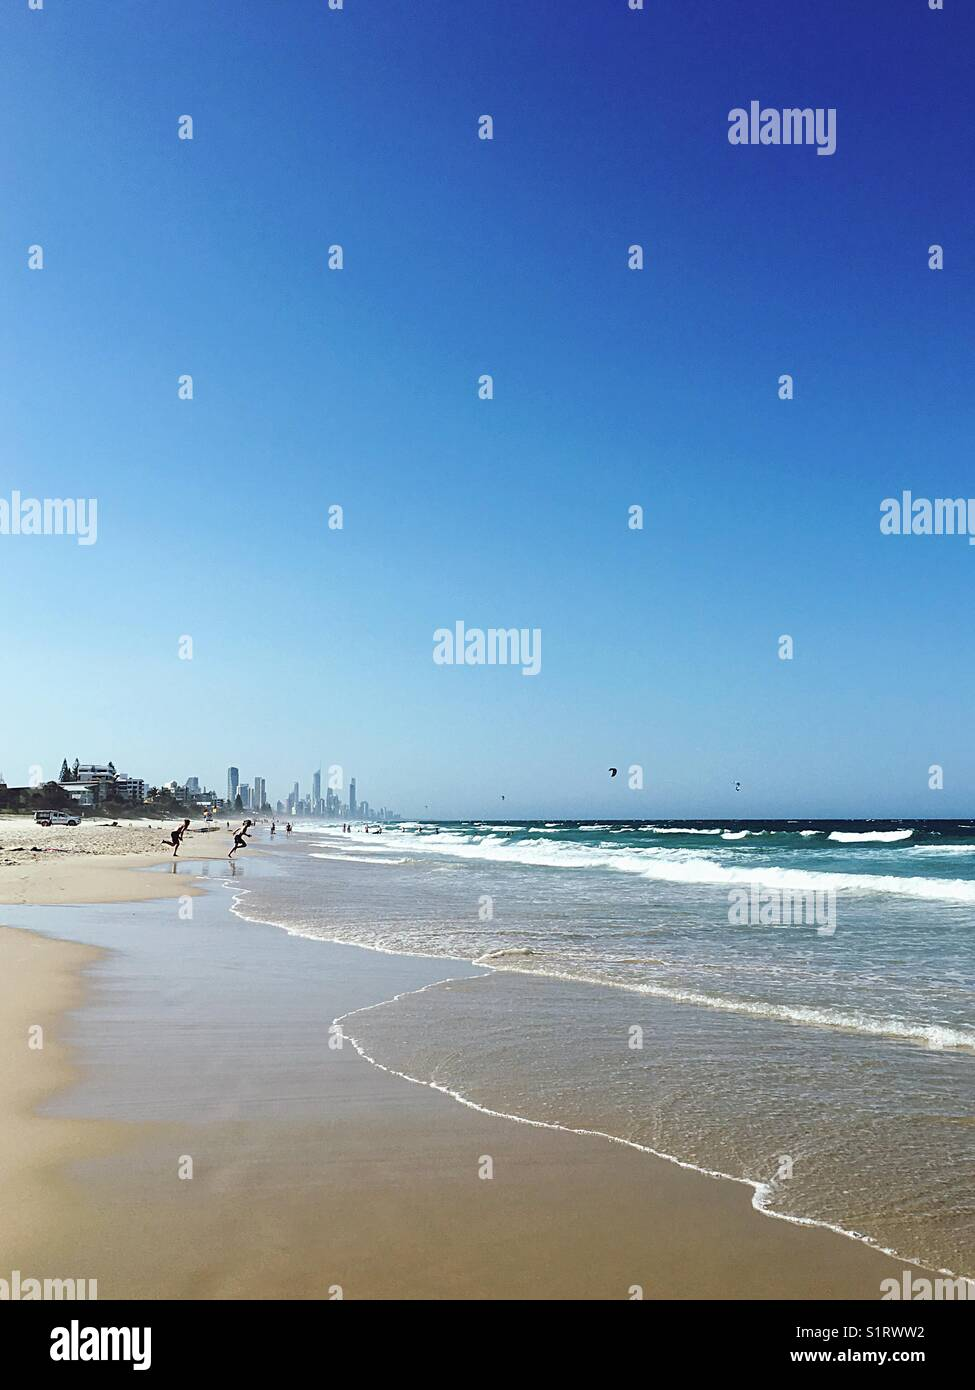 Two guys running towards the water. Miami Beach, Gold Coast, Queensland. - Stock Image